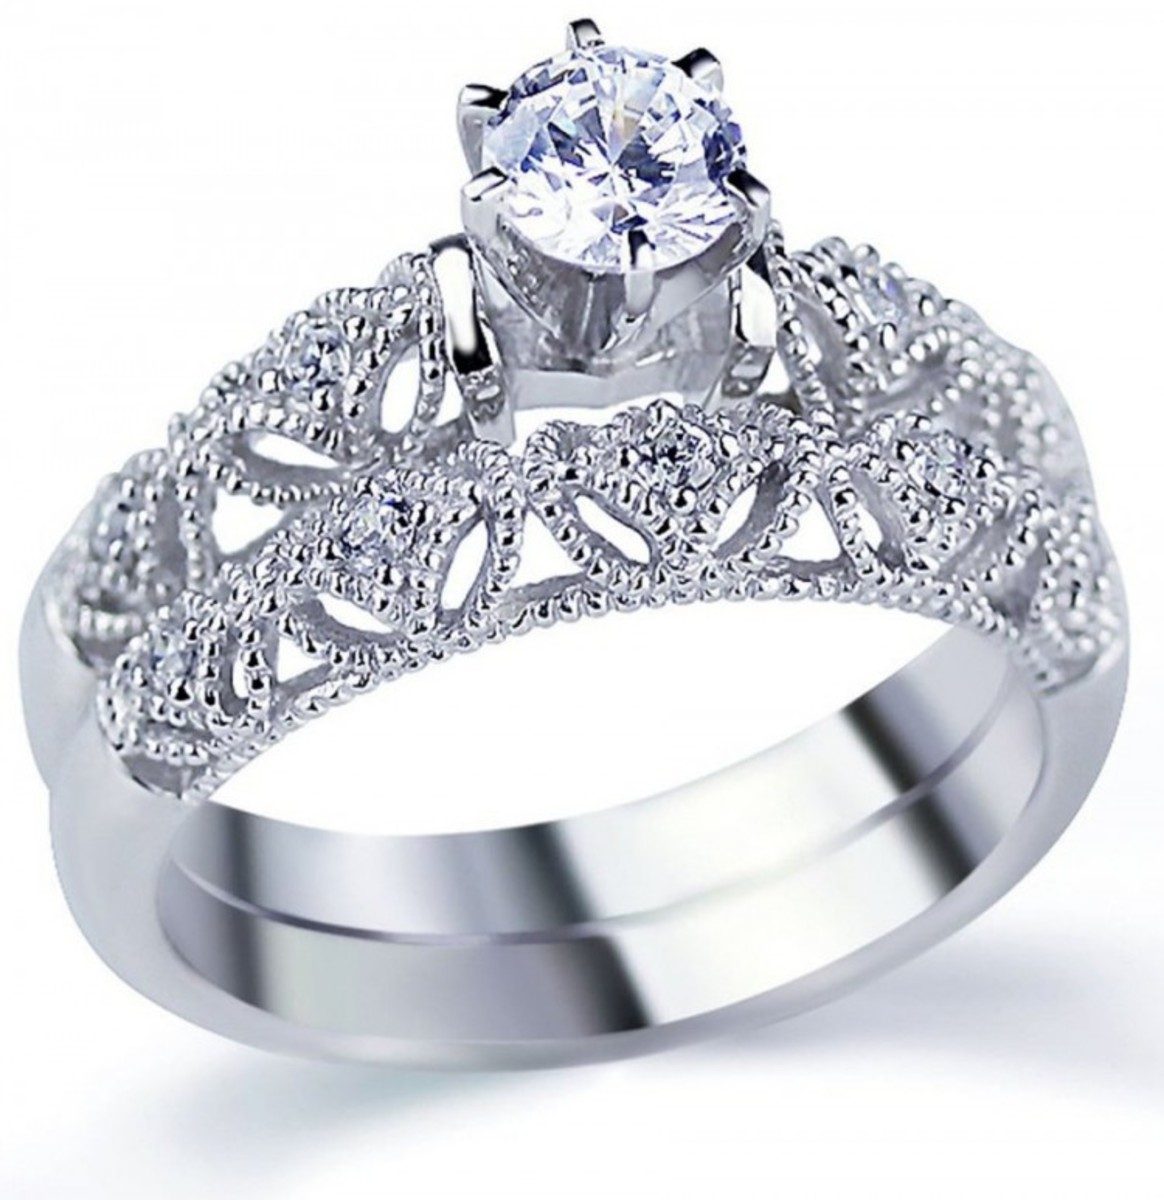 Rhodium-plated sterling silver 925 ring